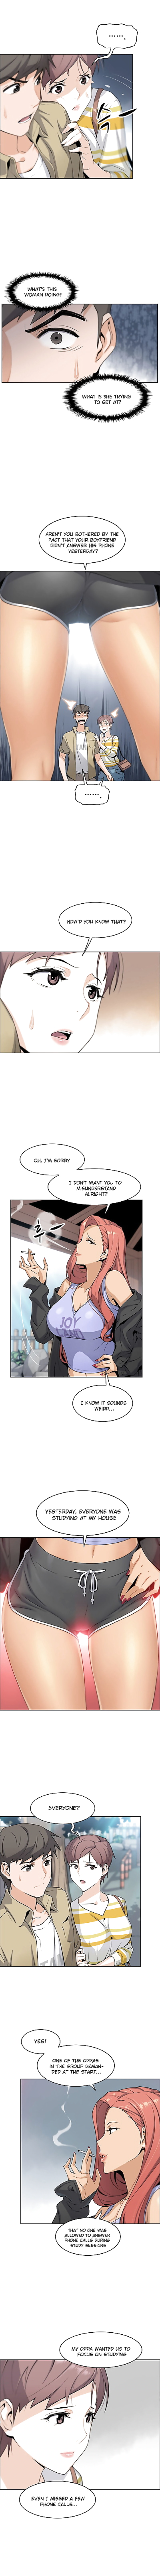 Housekeeper Neck Pillow- Paper Ch.5/? English Hentai Universe - part 2